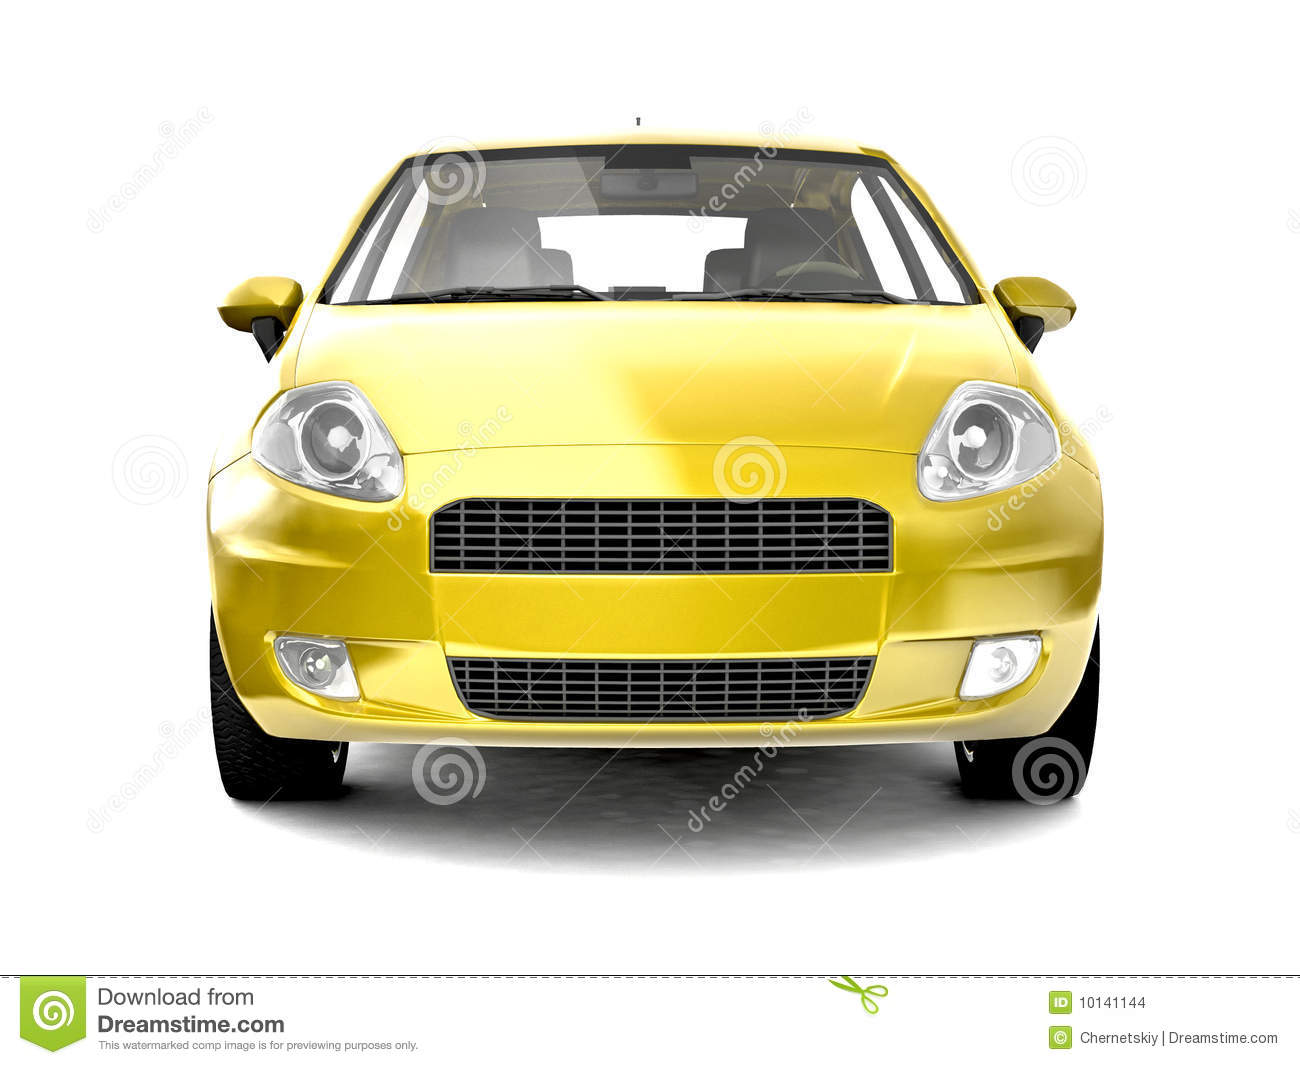 compact yellow car front view stock illustration. Black Bedroom Furniture Sets. Home Design Ideas